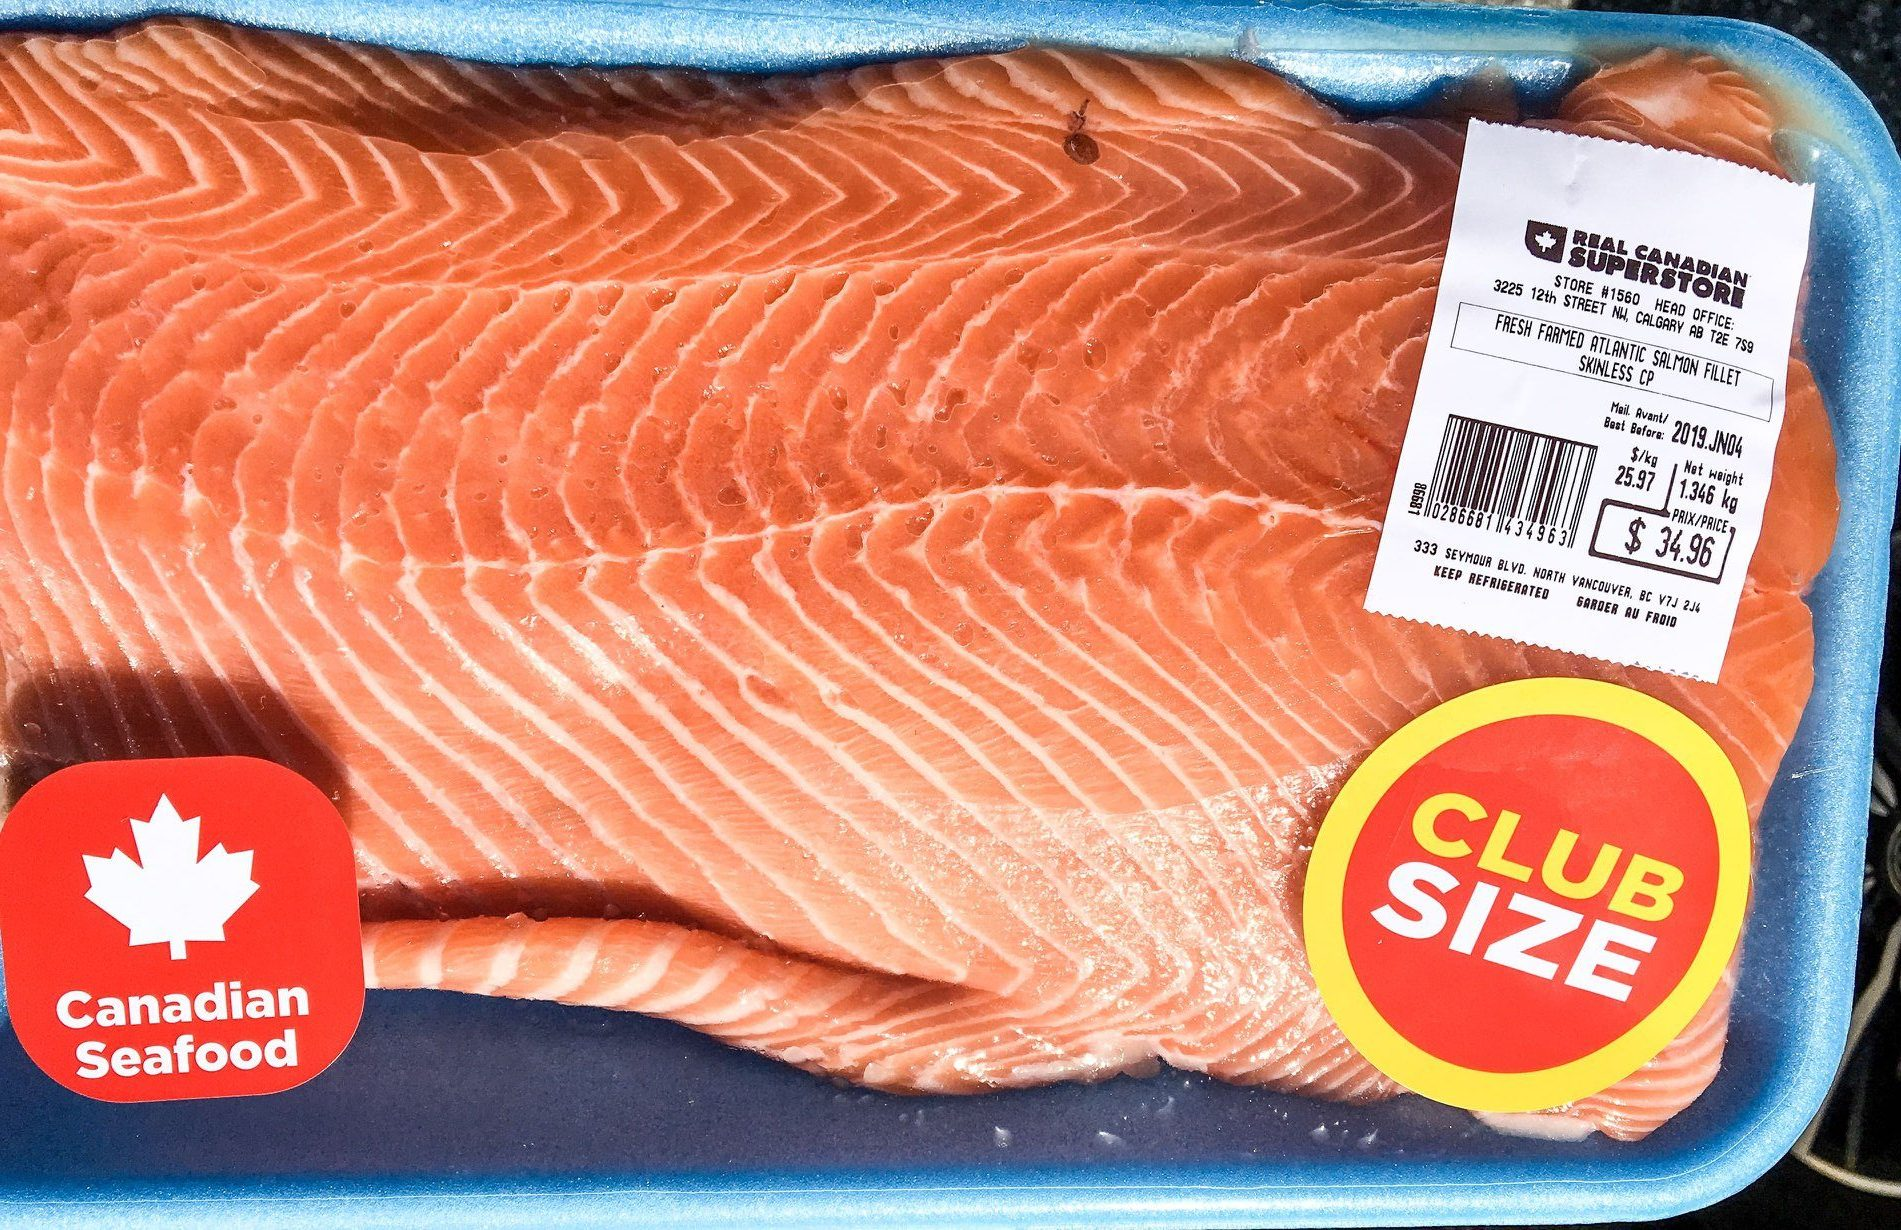 Biologist alarmed after buying farmed salmon with sea louse on it from grocery store